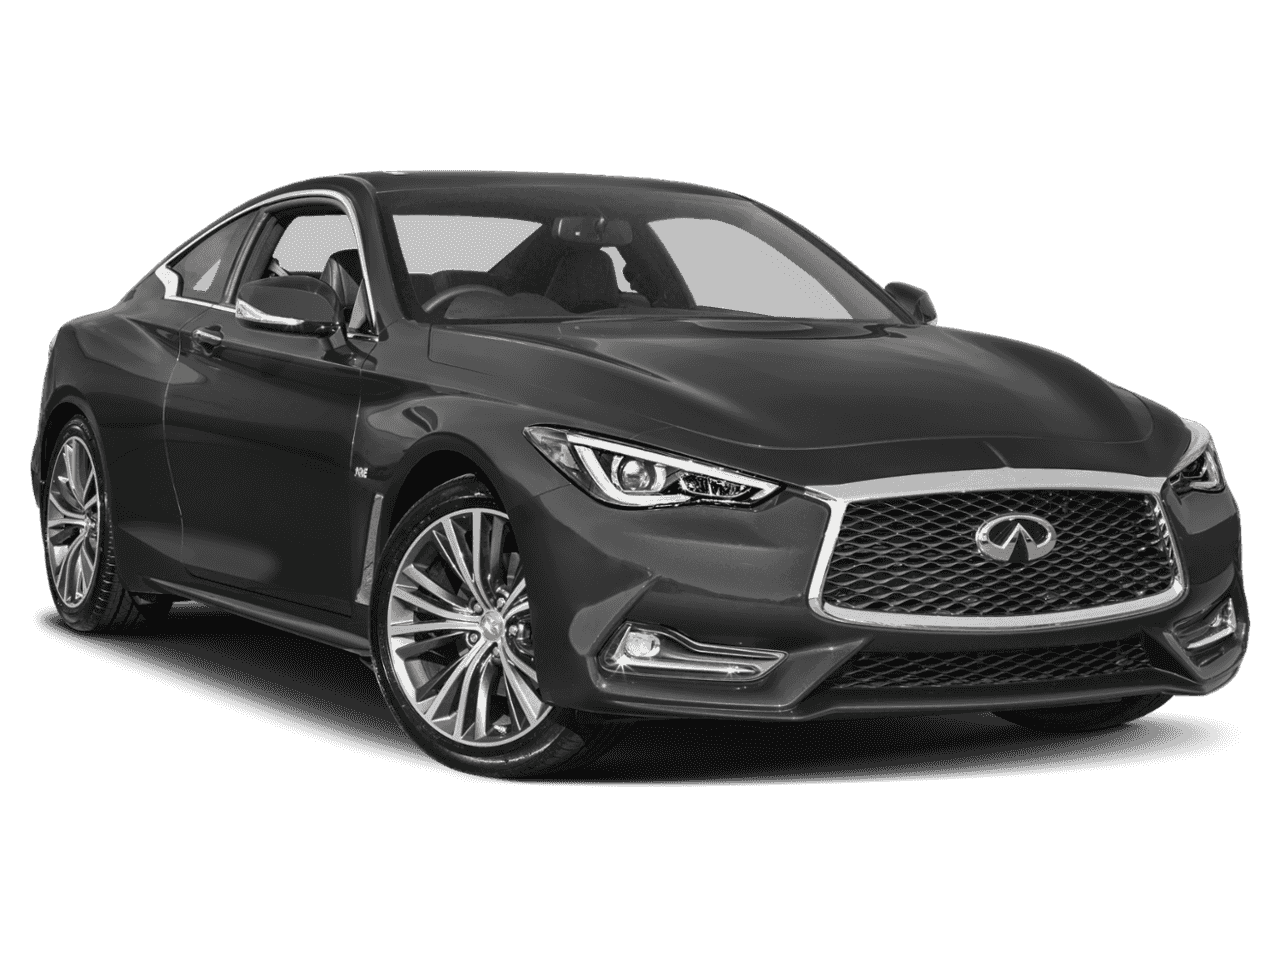 New 2019 INFINITI Q60 3.0t LUXE RWD 2dr Car